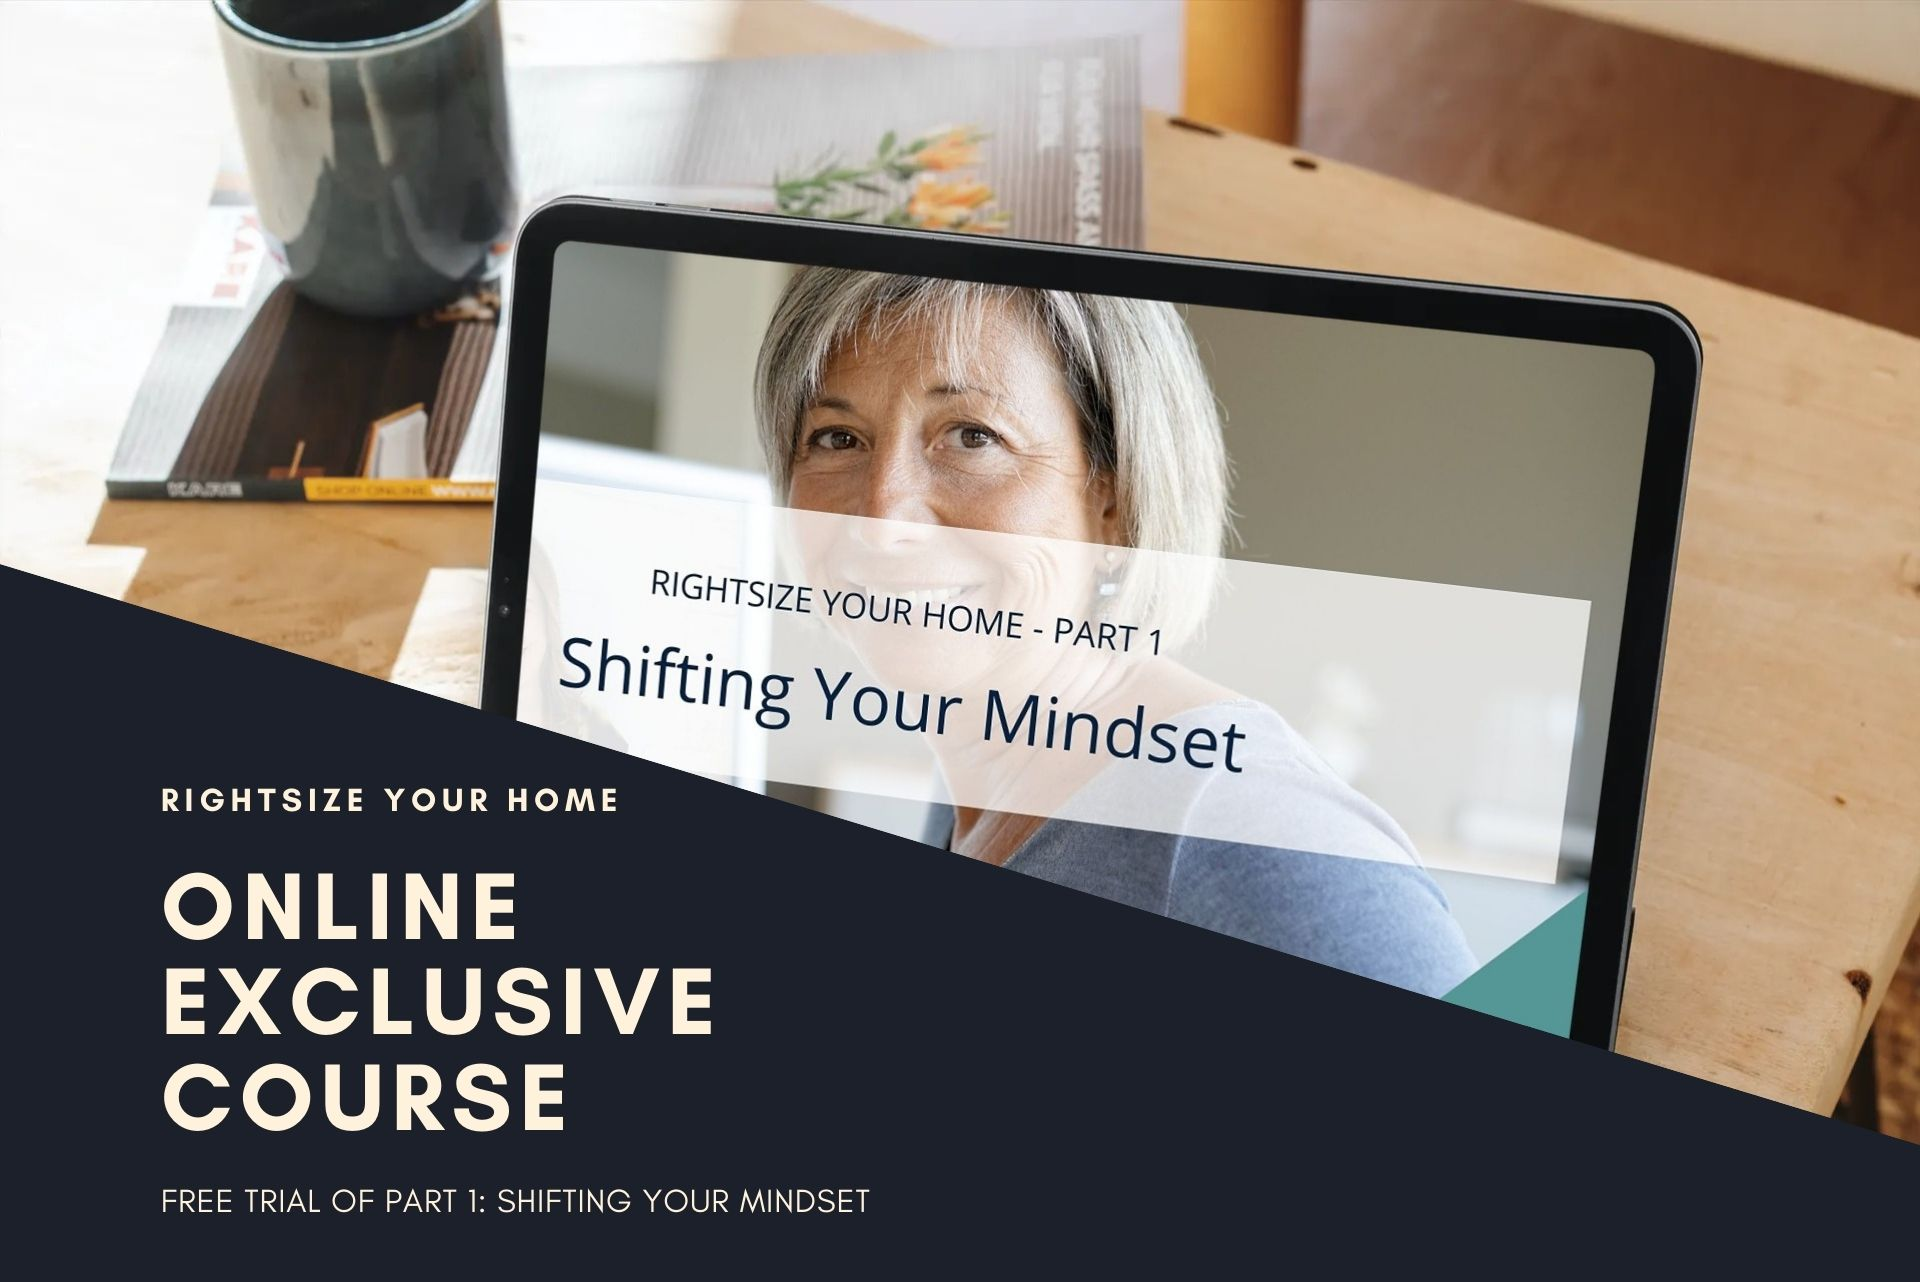 Rightsize Your Home online exclusive course